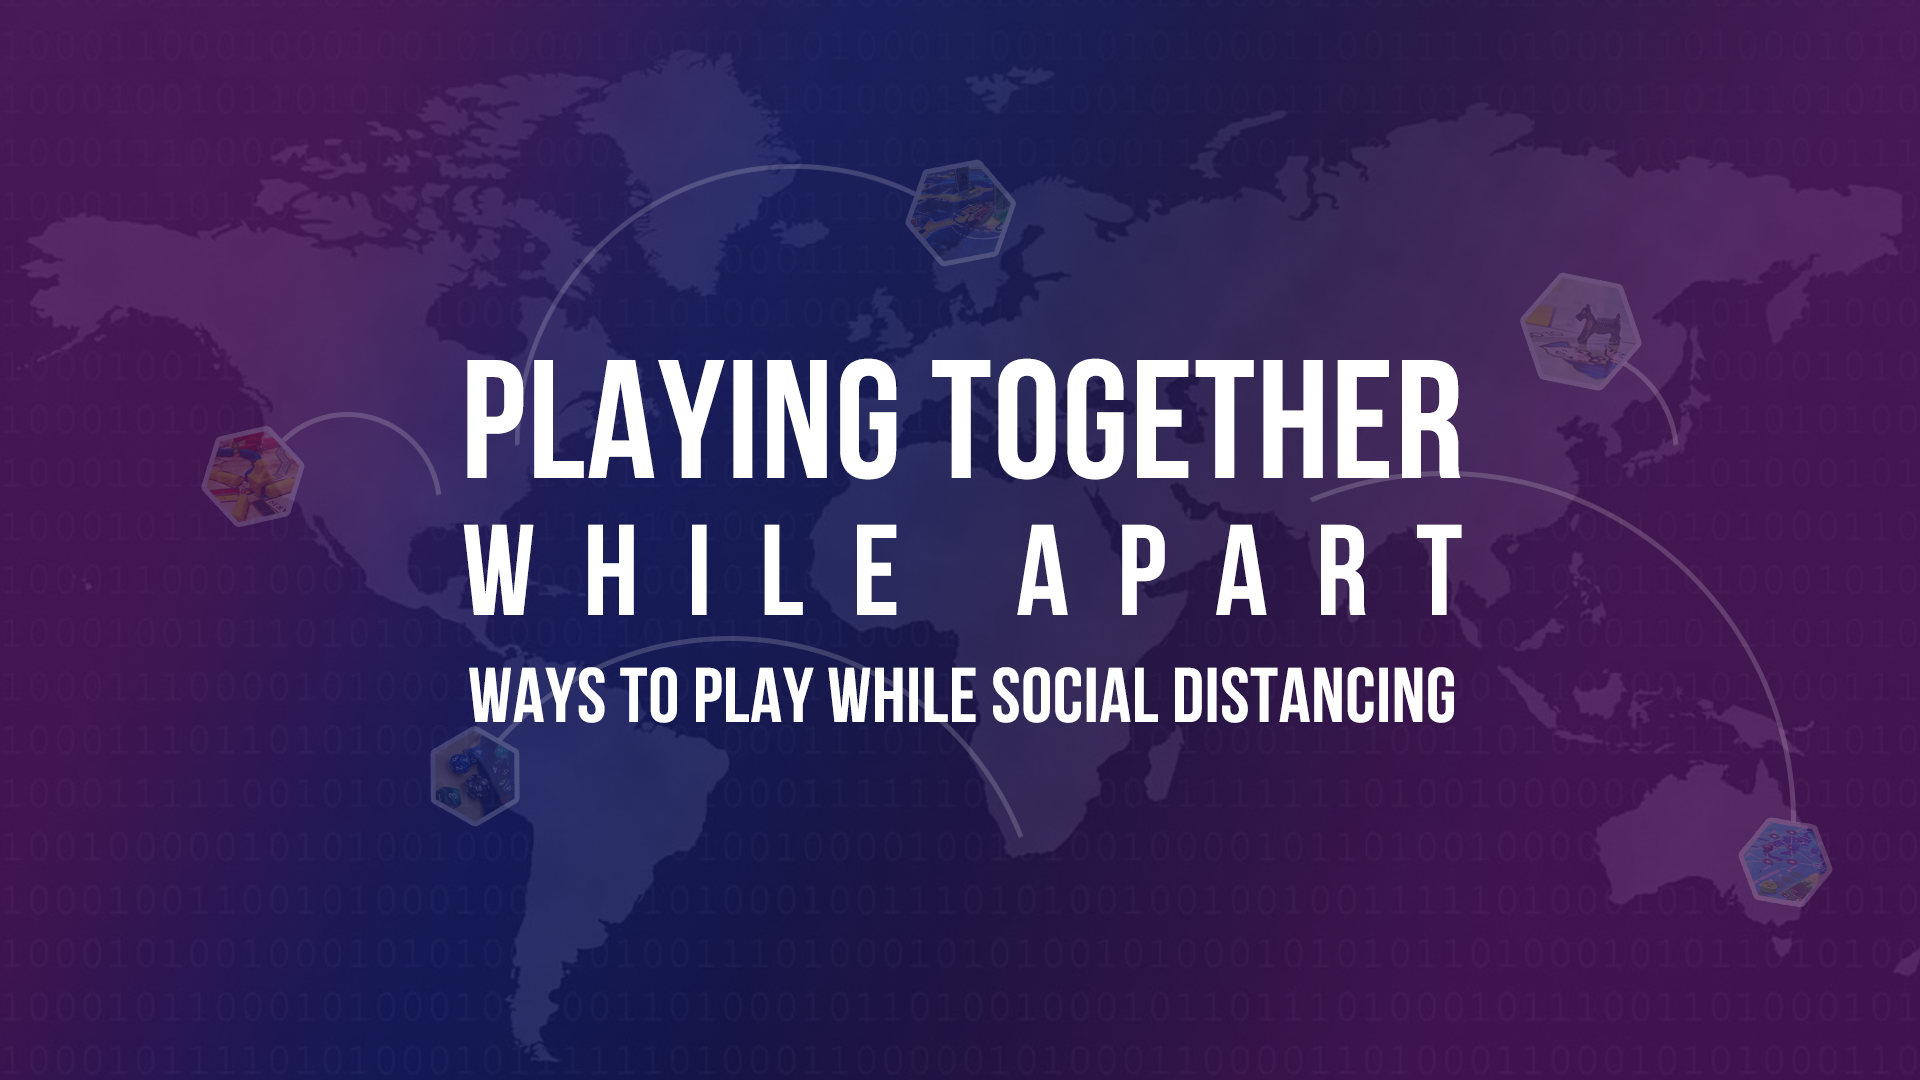 Playing Together While Apart Ways to Play Board Games While Social Distancing Banner